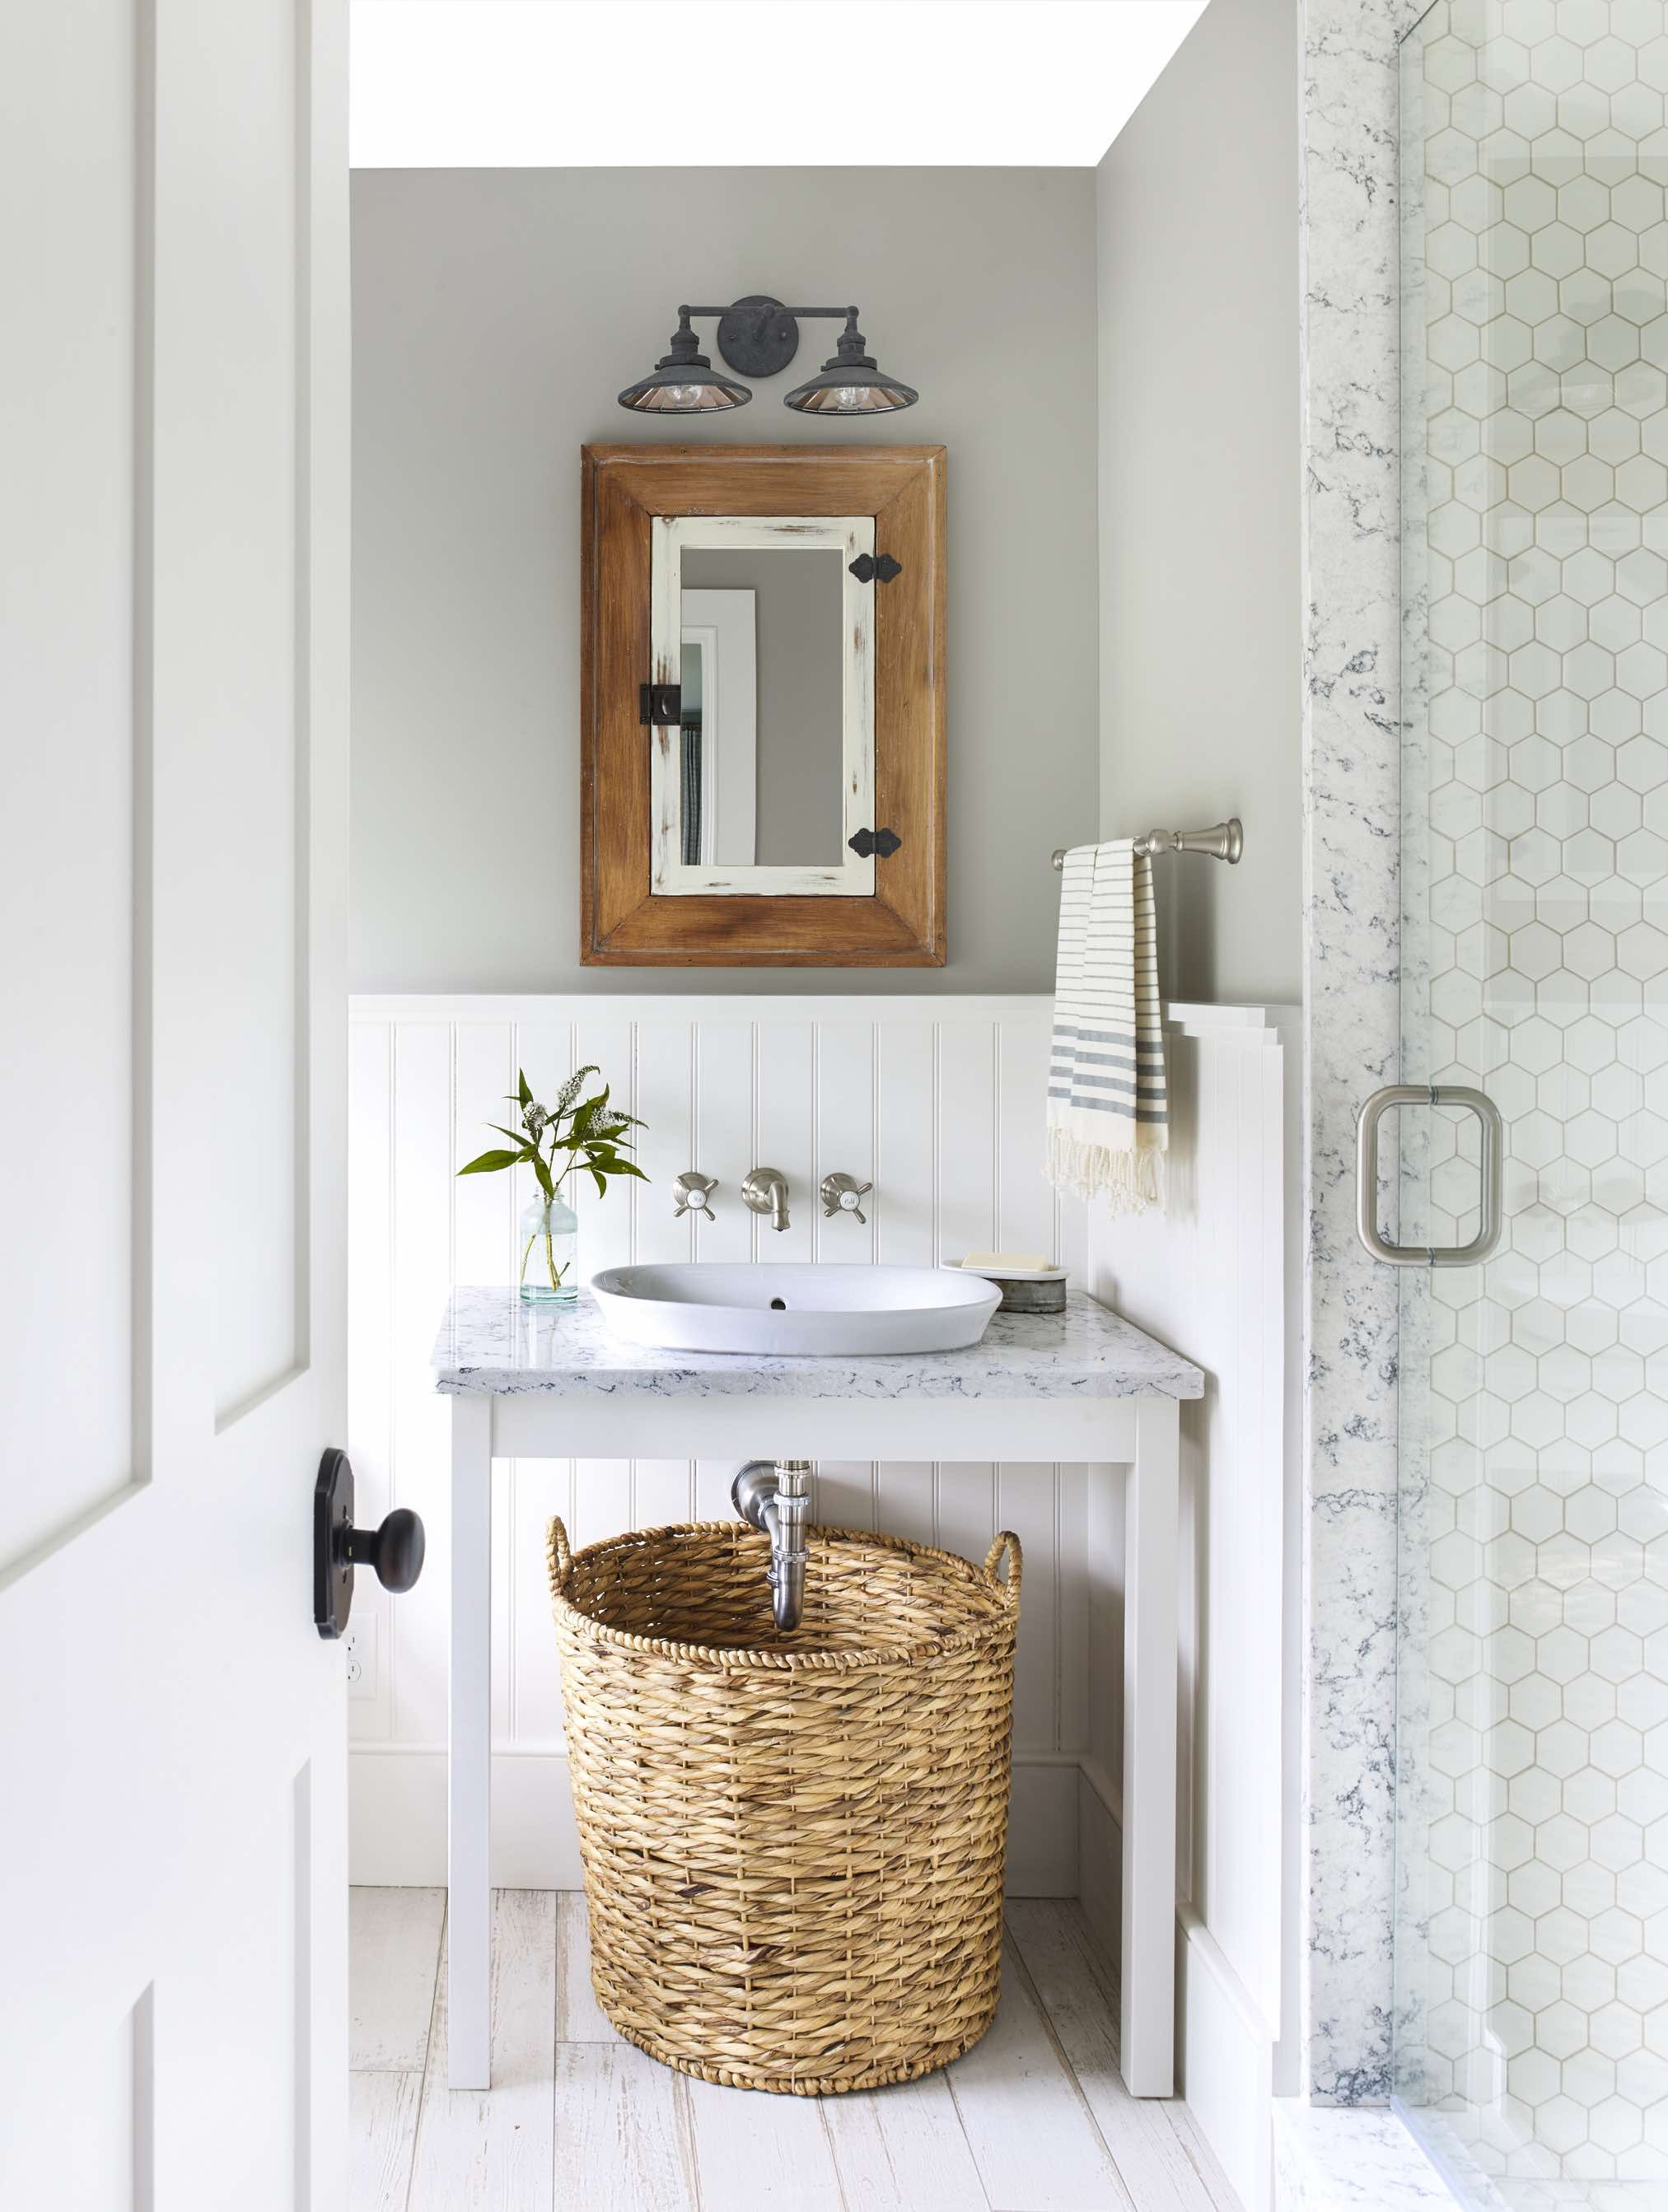 20 Best Bathroom Paint Colors - Popular Ideas for Bathroom Wall Colors